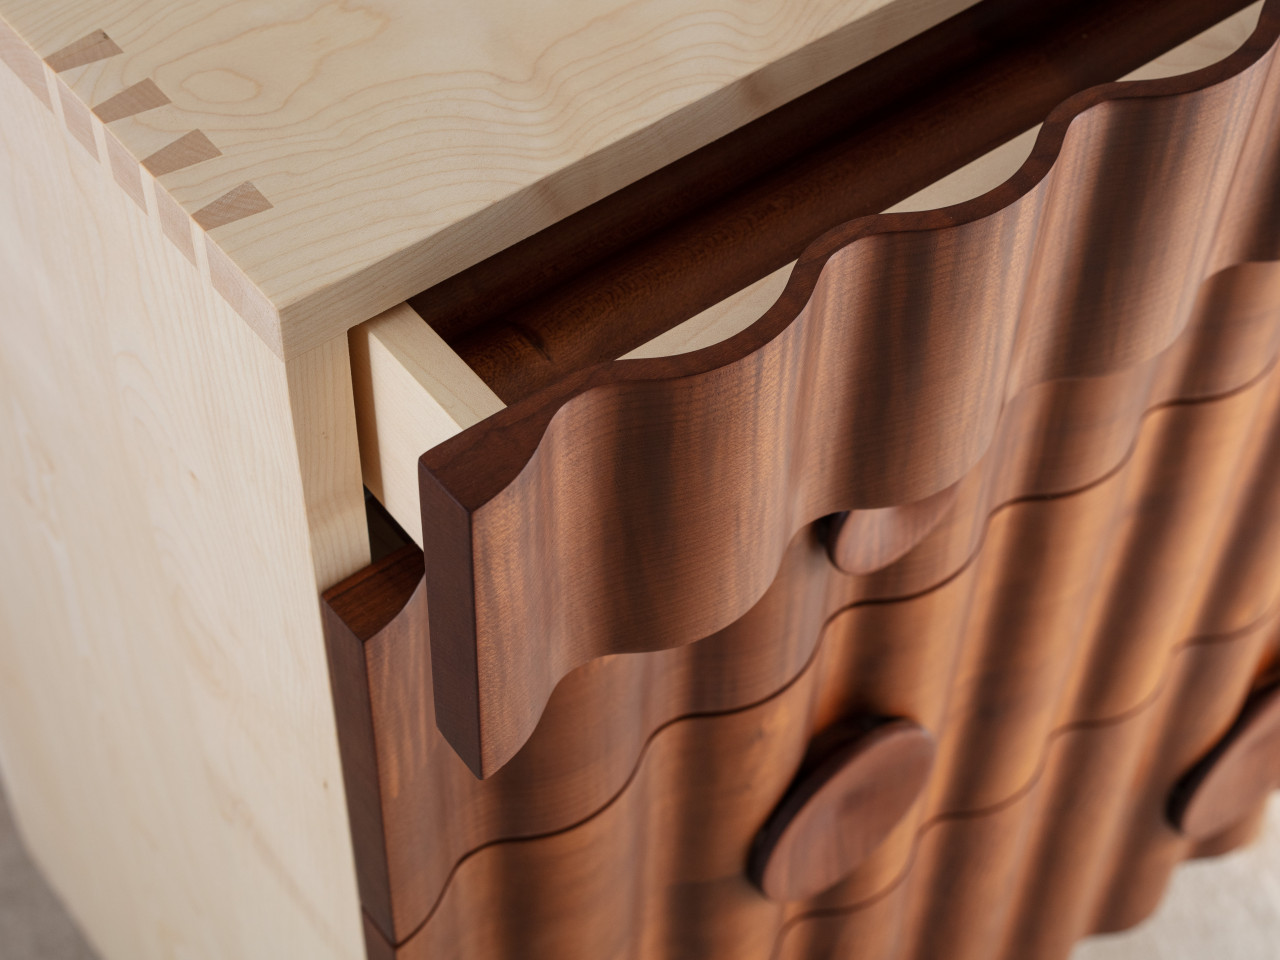 chest of drawers detail